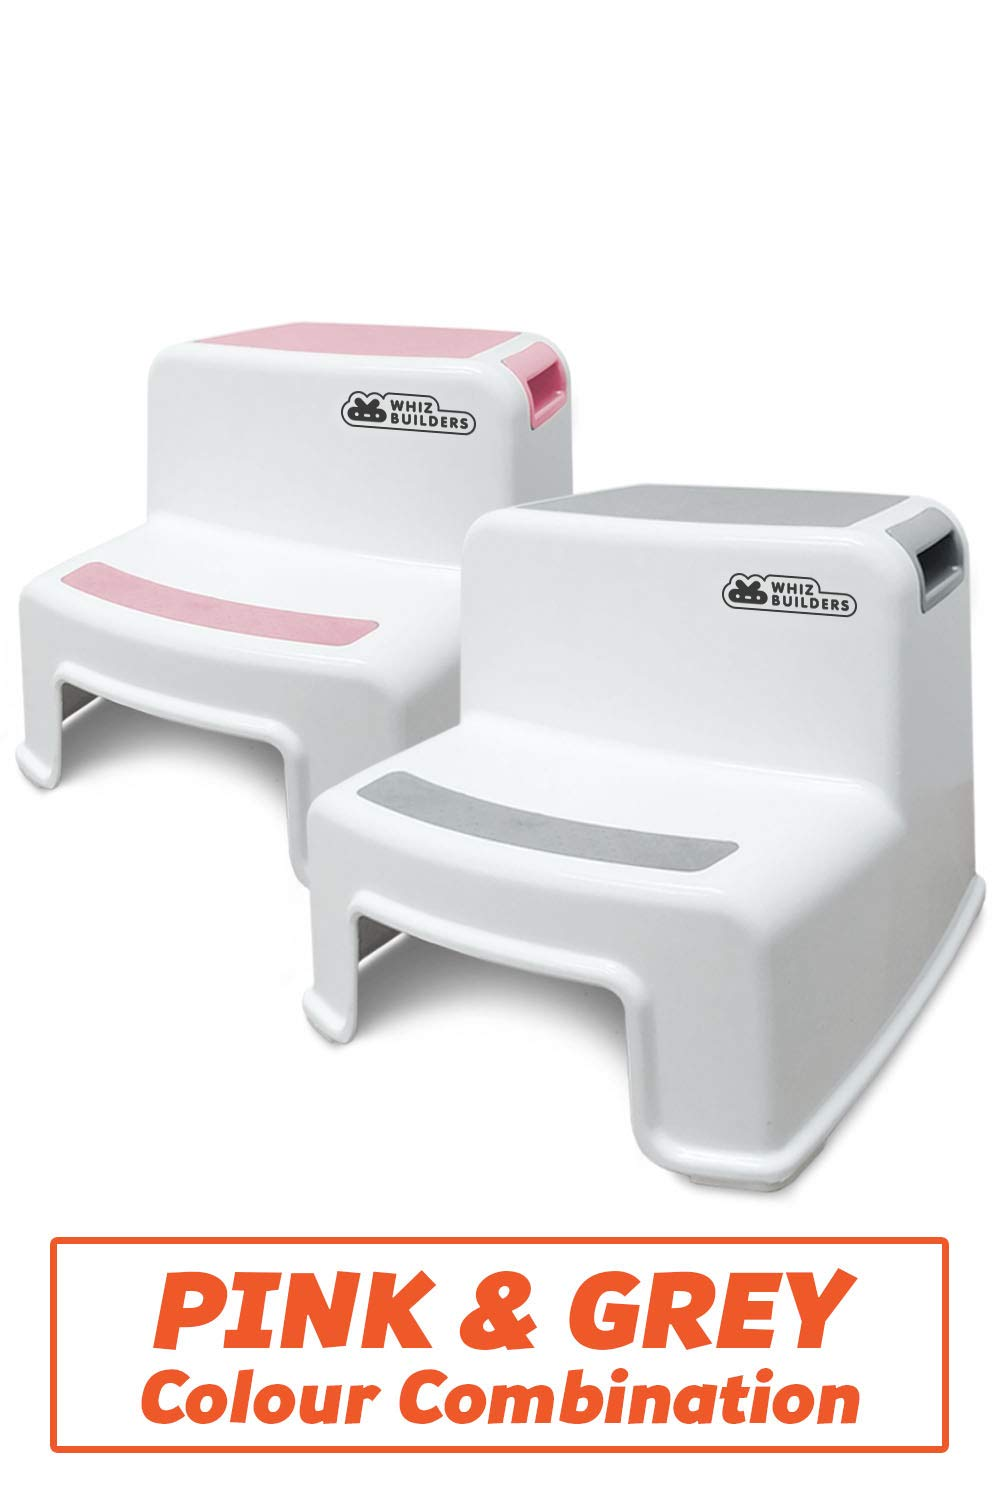 2 Step Stool for Kids and Toddler - Stepping Bathroom Potty Training Stool - Dual Height Plastic stools for Children/Child Safety - Slip/Skid Resistant Steady Grip for Toilet, Kitchen, Bed by KinderBerries